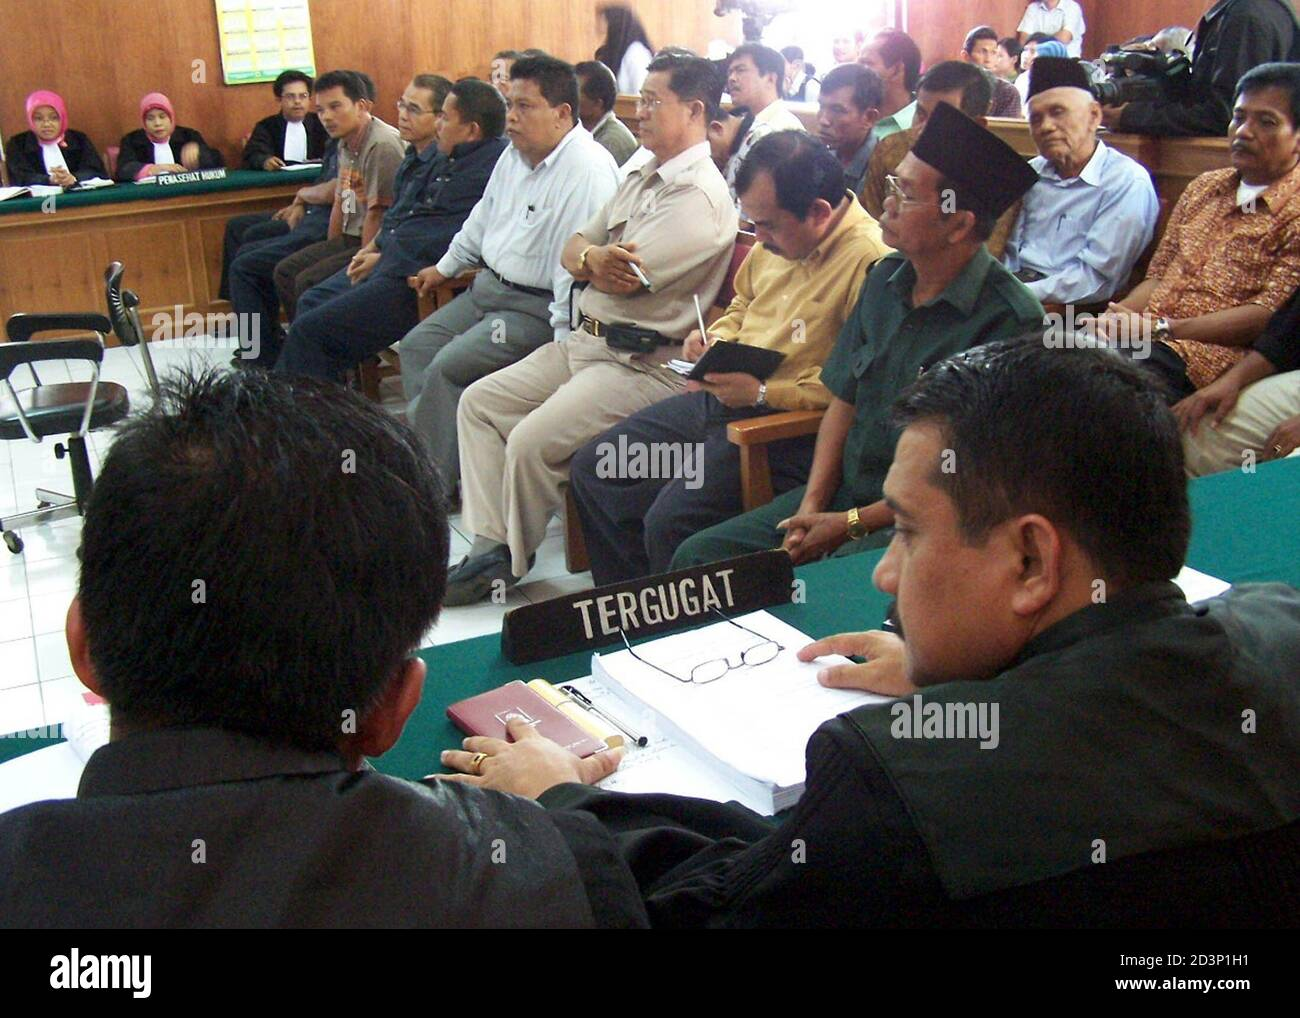 Former Indonesian city councillors sit in a courtroom with their lawyers (front) in Padang, West Sumatra July 27, 2005. An Indonesian court on Wednesday sentenced 27 former city councillors to four years in jail after they were found guilty of corruption, underlining an anti-graft drive by the world's fourth-most populous country. REUTERS/Singgalang-Muhammad Fitrah  DW/CCK Stock Photo